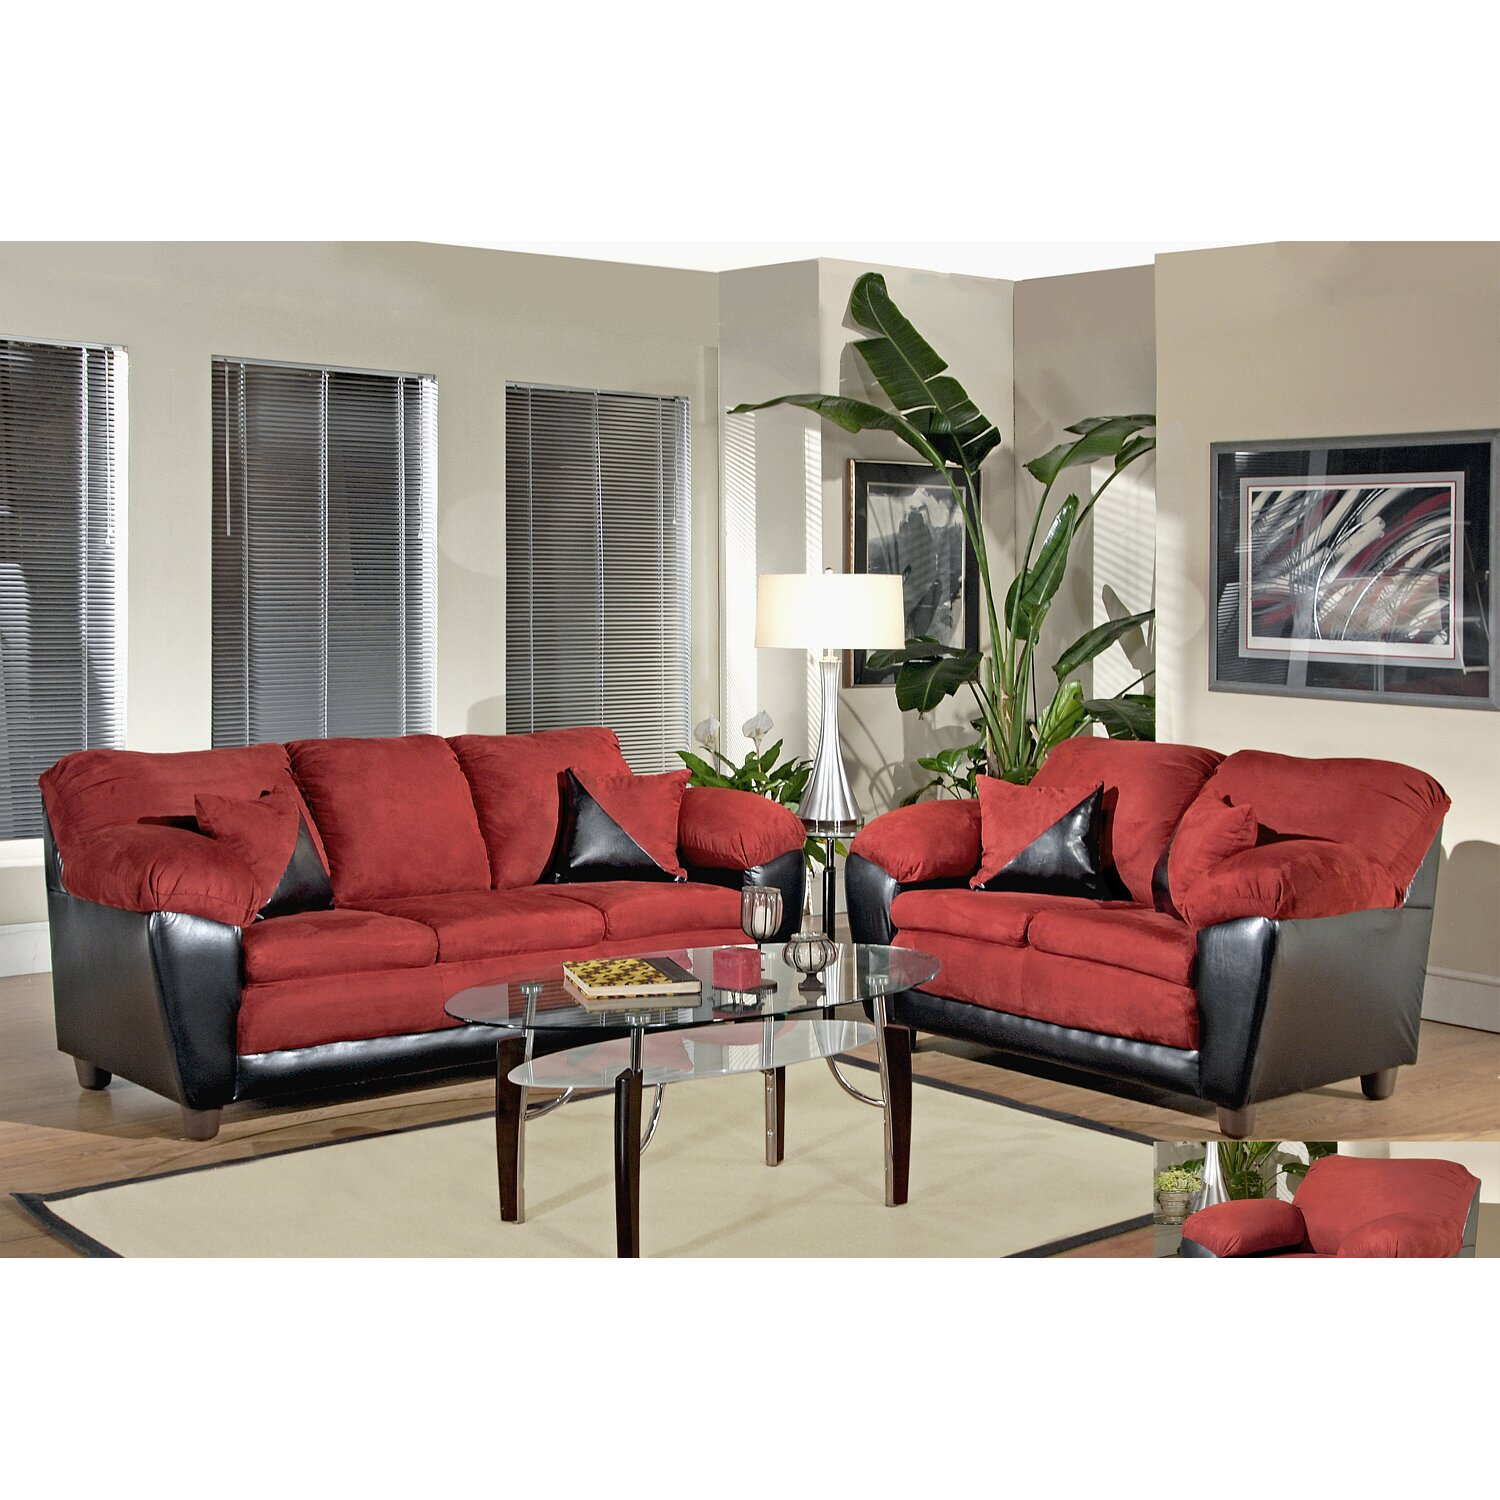 Piedmont Furniture Brooklyn Living Room Collection Reviews Wayfair